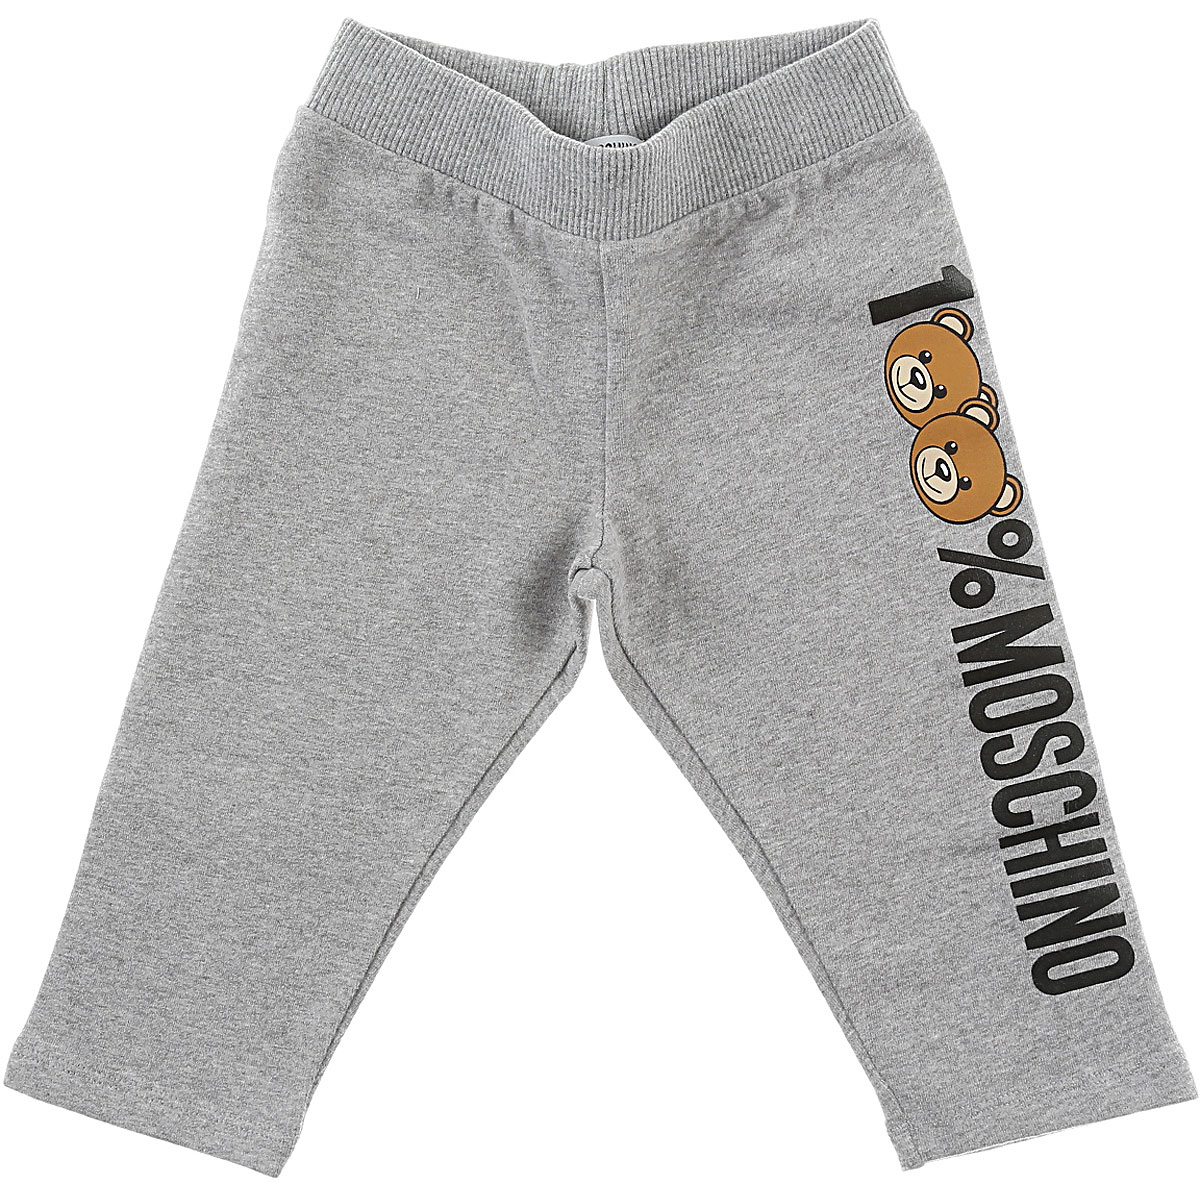 Image of Moschino Baby Sweatpants for Boys, Grey, Cotton, 2017, 24M 2Y 3Y 6M 9M